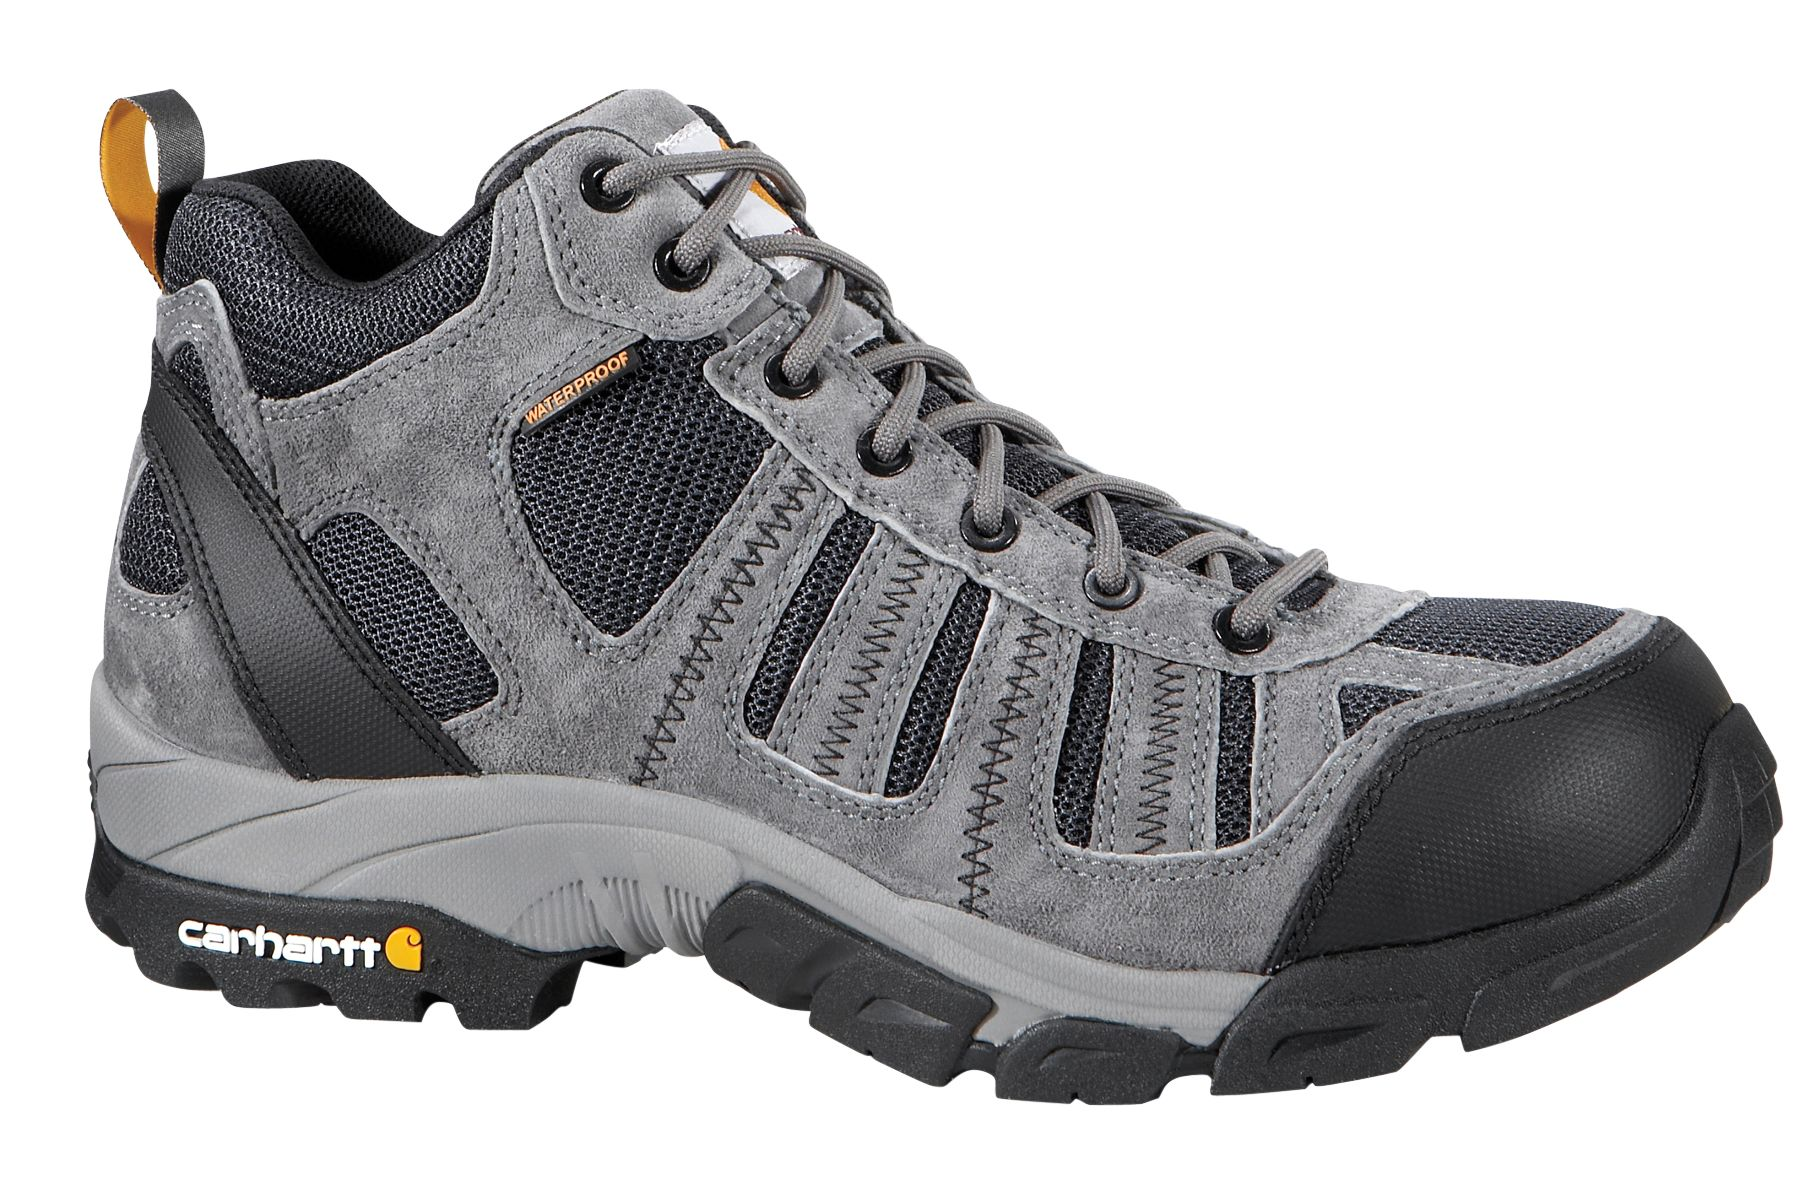 Carhartt Men's Lightweight Hiker Composite Toe Waterproof Work ...